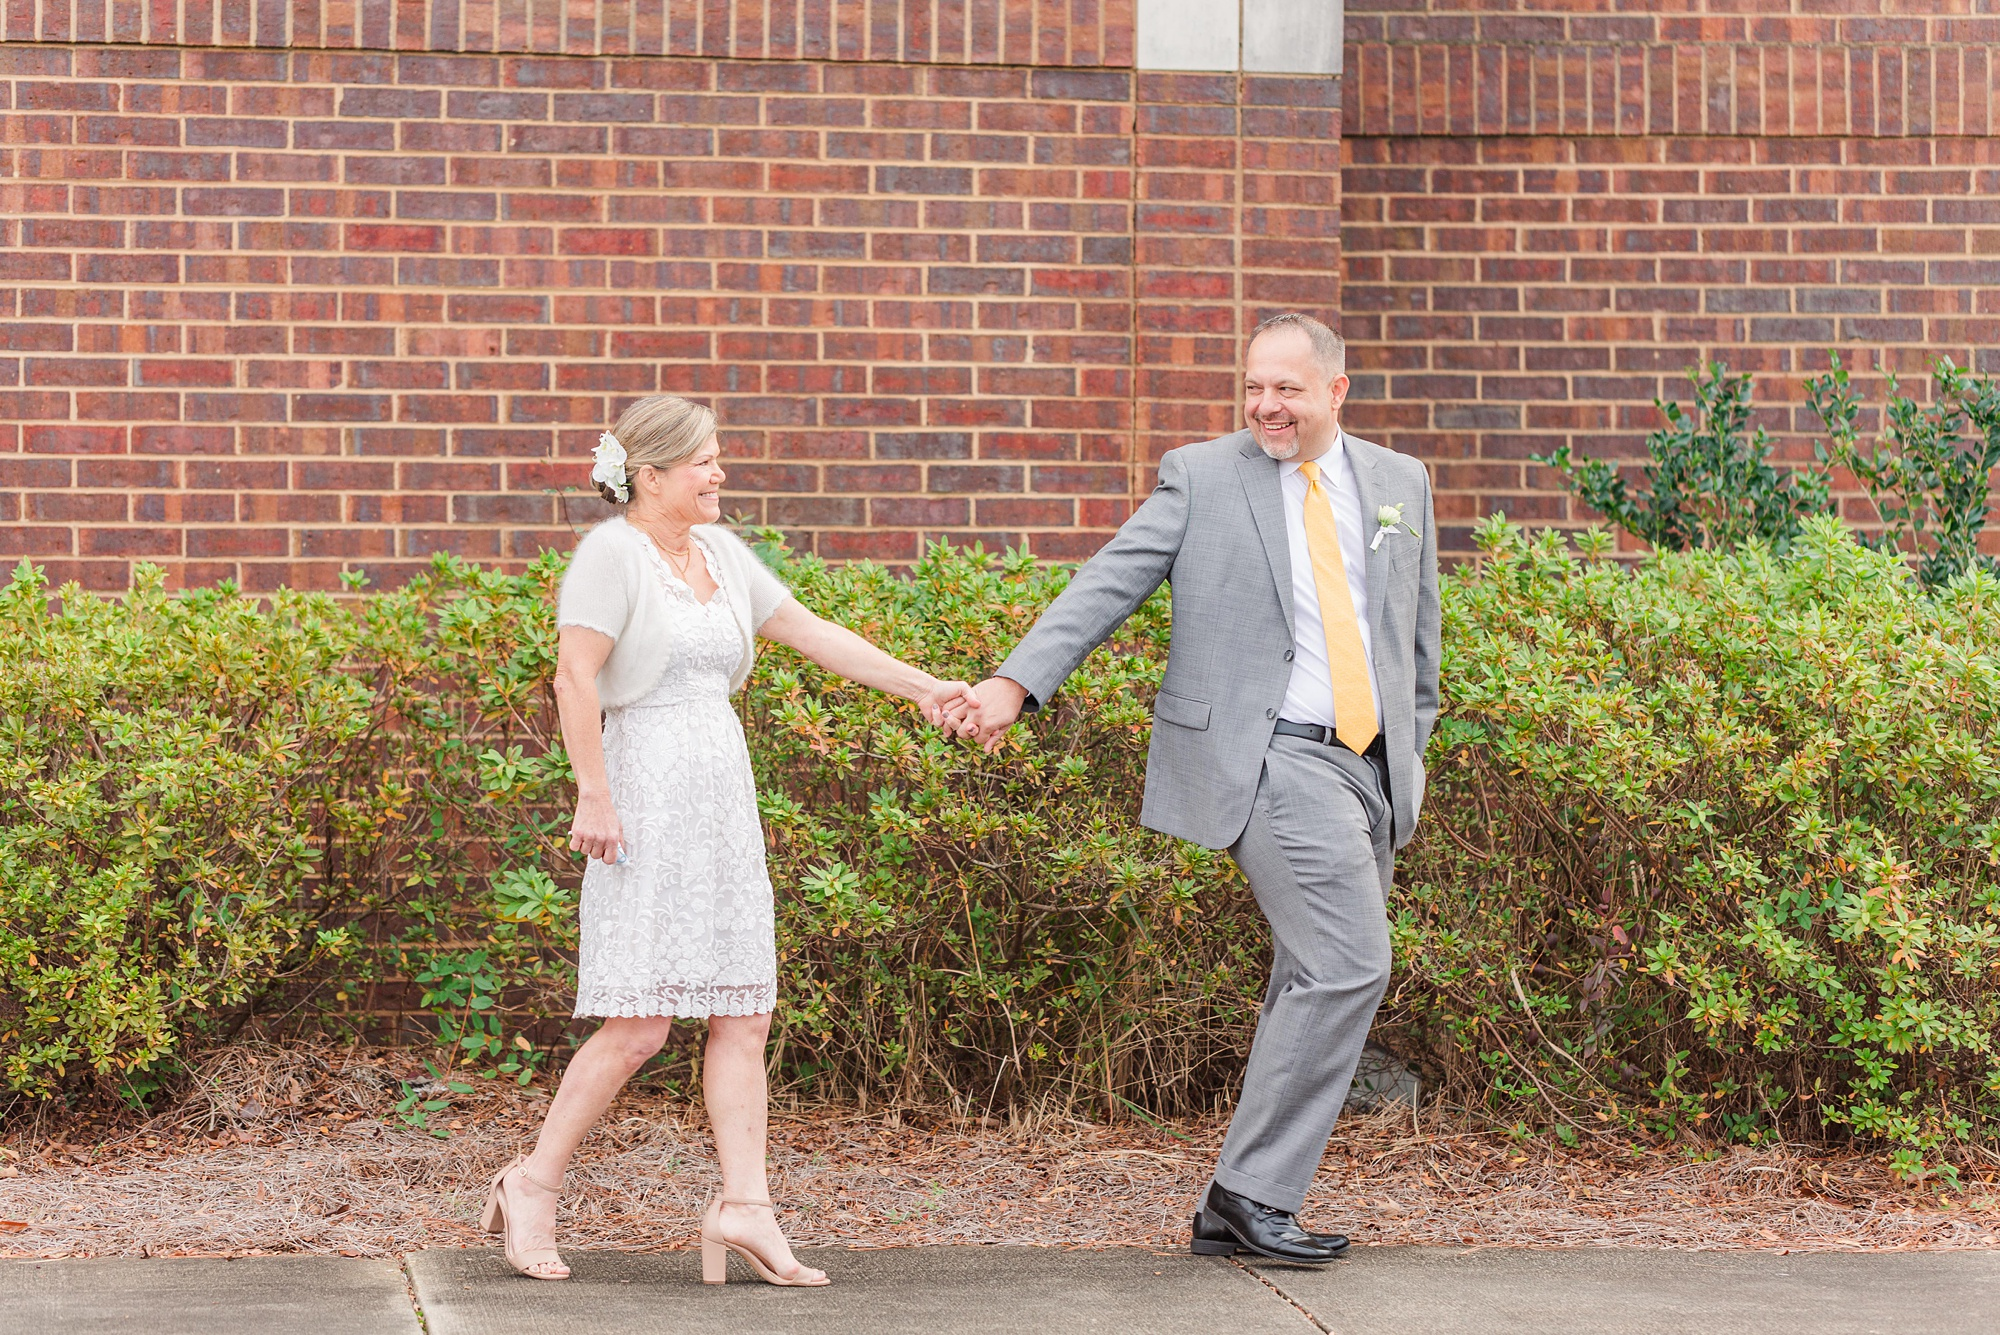 bride and groom hold hands walking by brick building